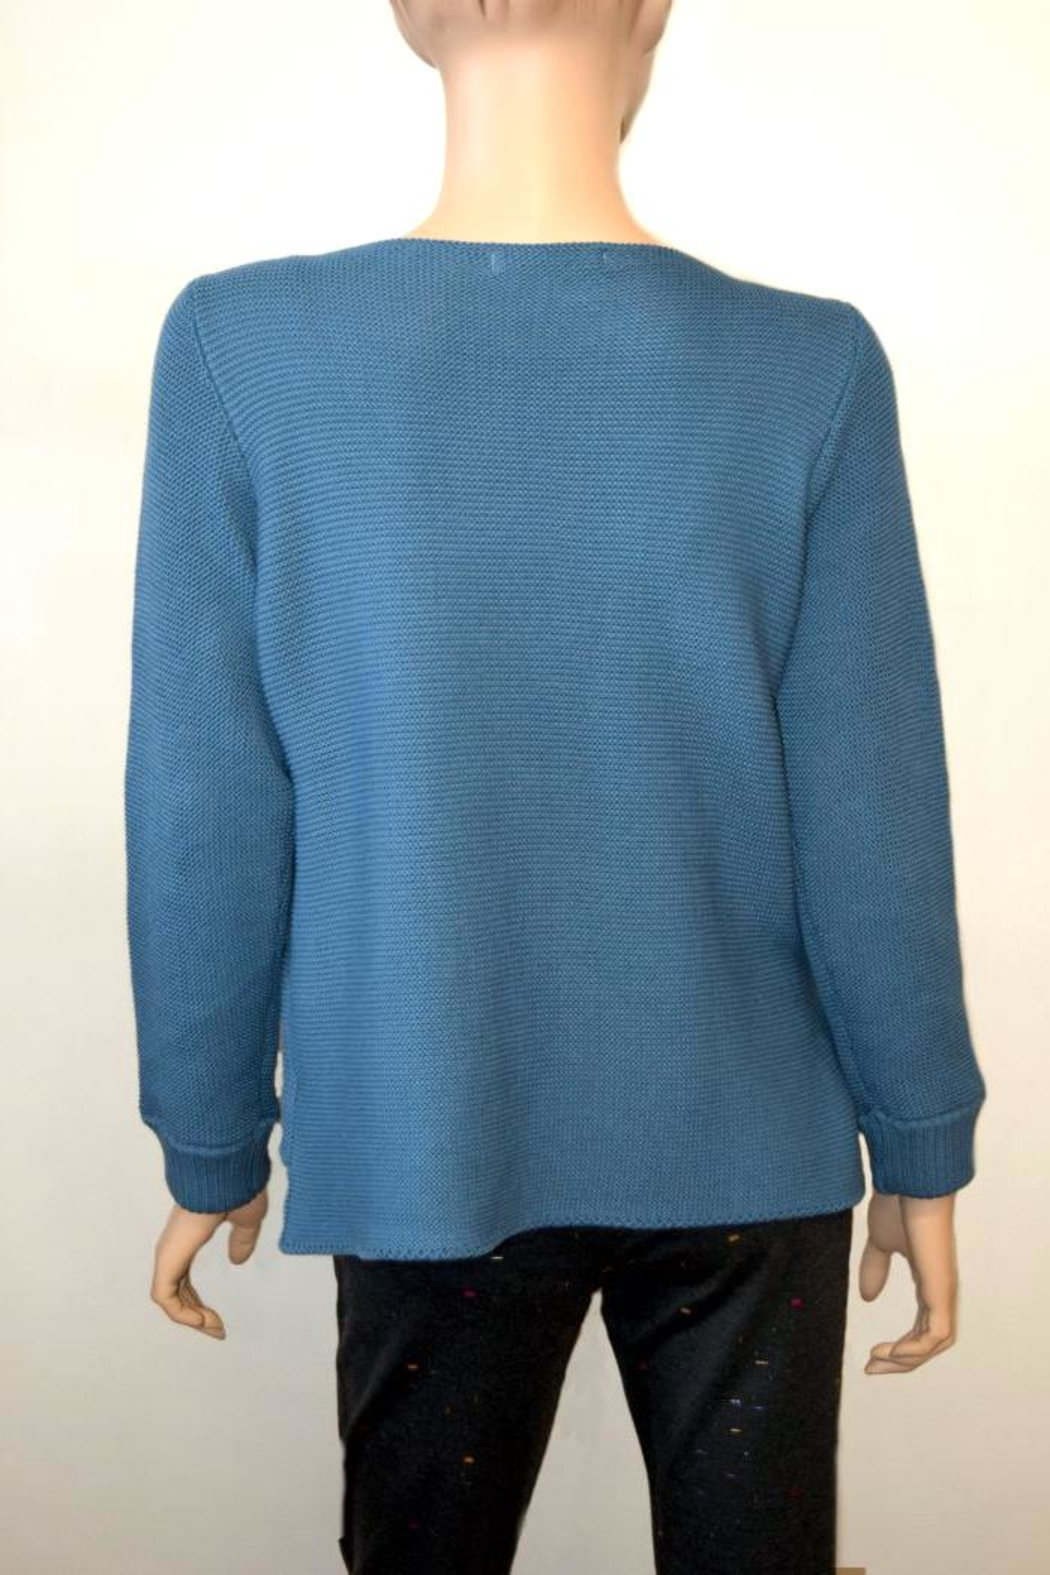 The Dressing Room Blue Cotton Sweater - Front Full Image